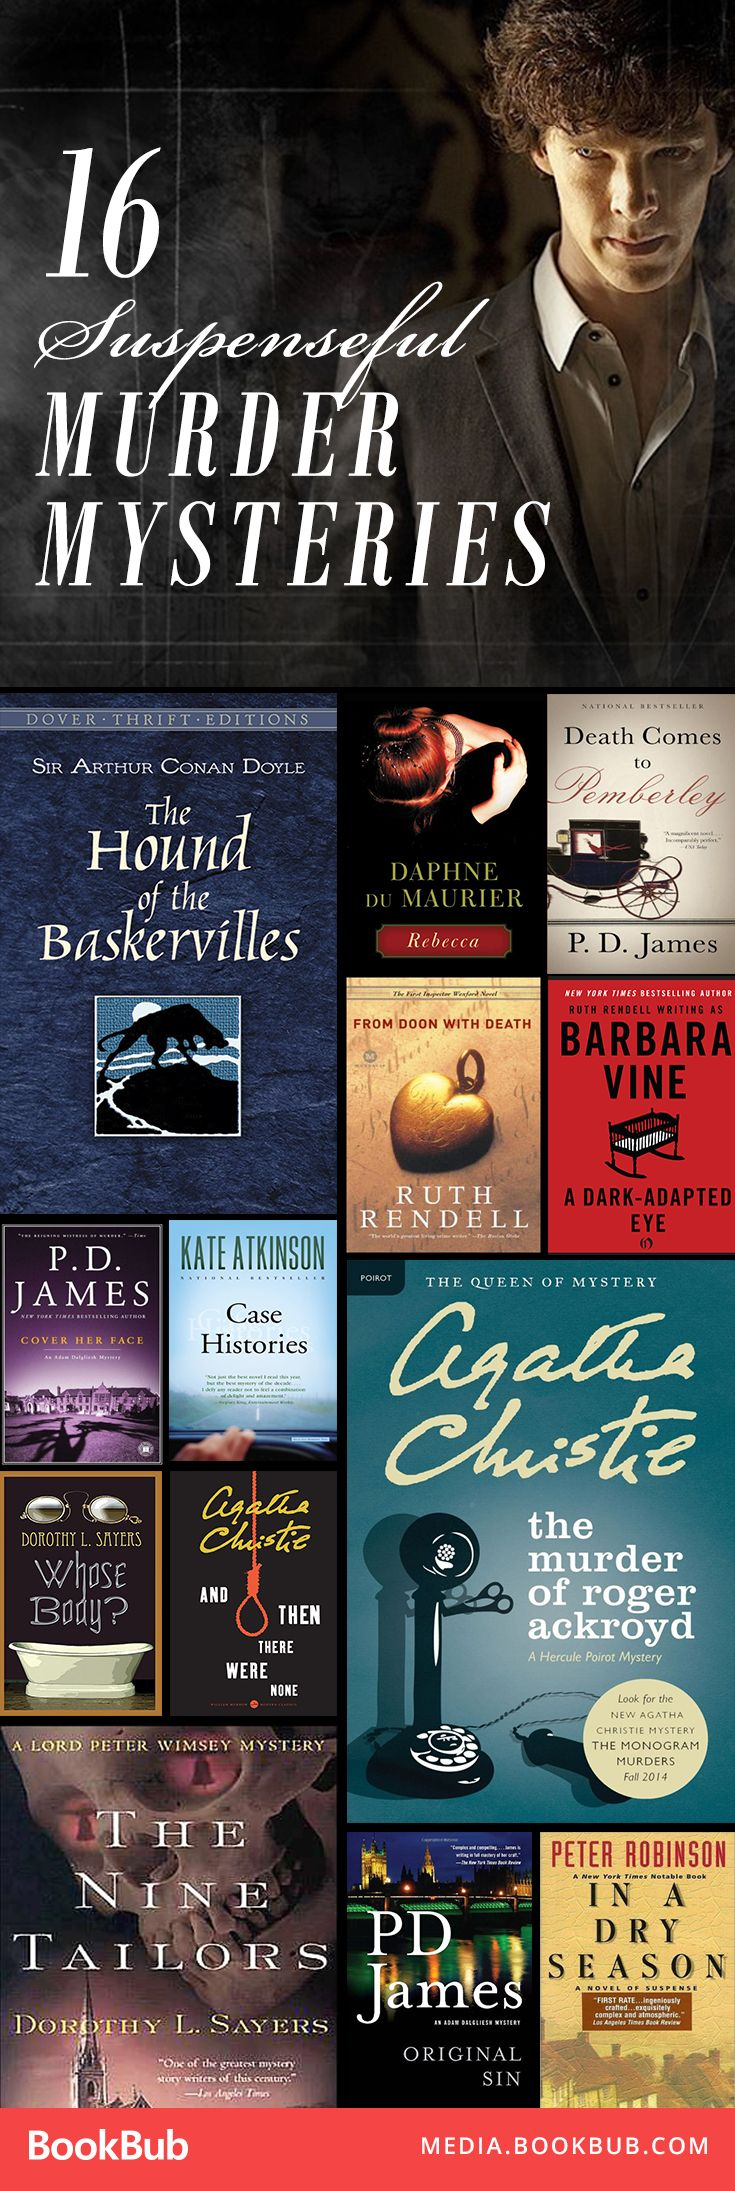 Bookbub Picks: Our 16 Favorite British Murdermysteries